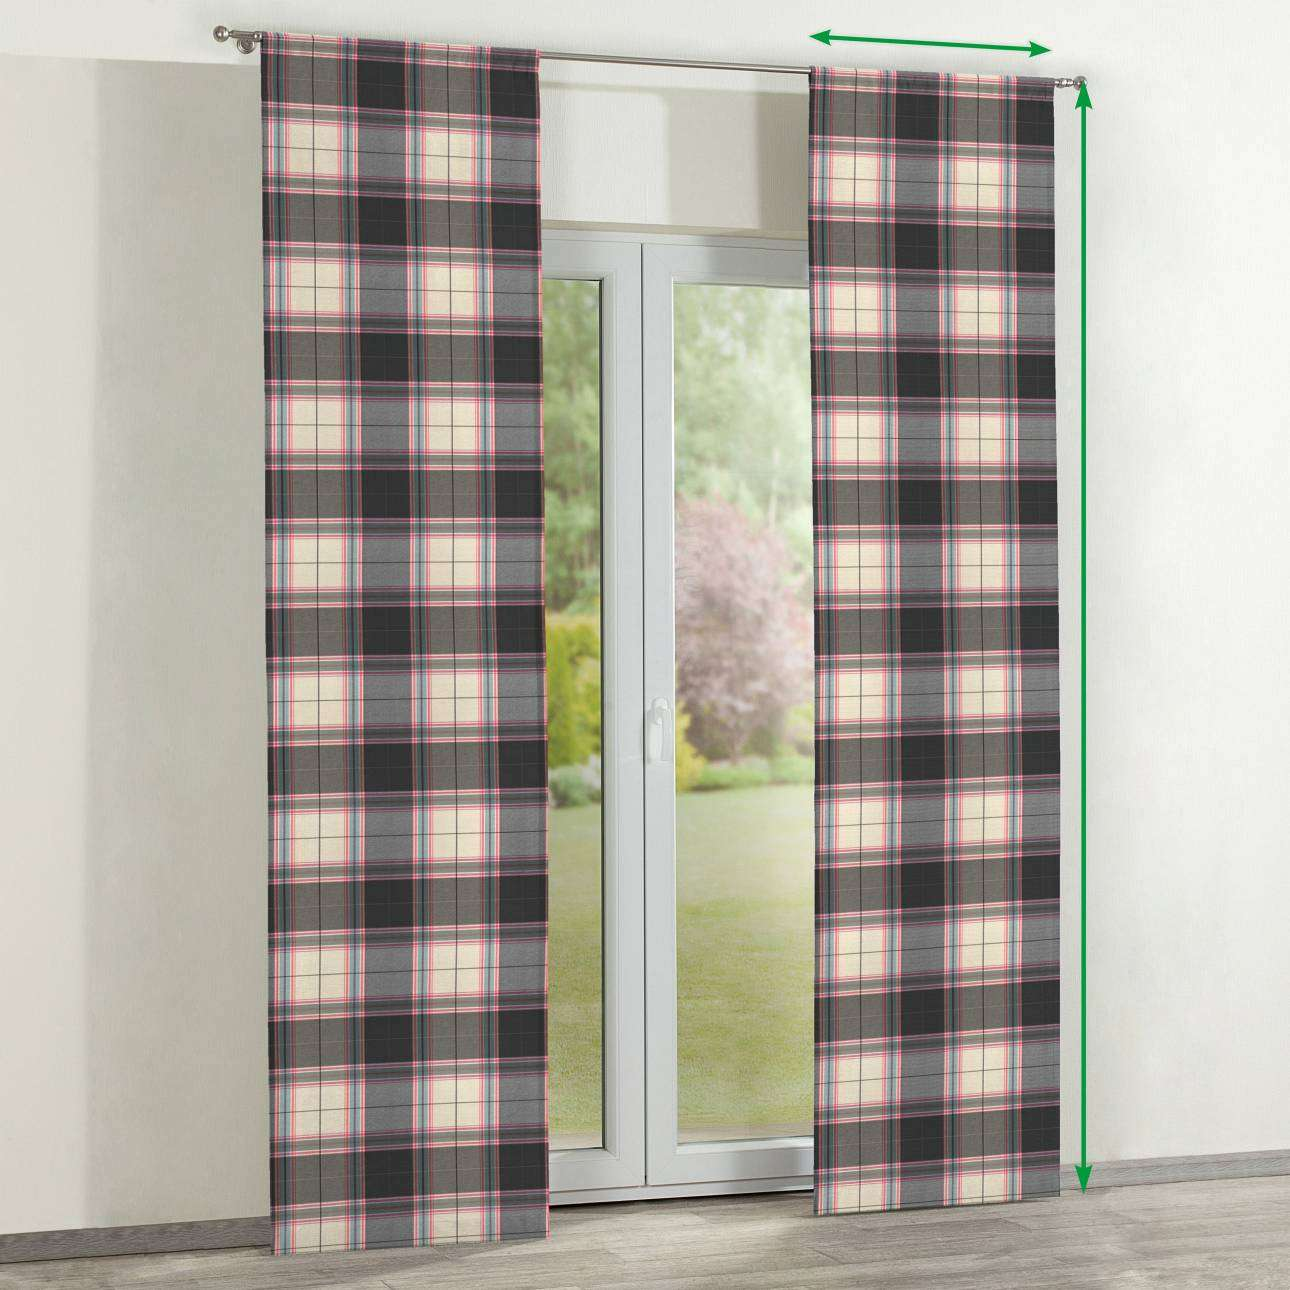 Slot panel curtains – Set of 2 in collection Bristol, fabric: 125-32